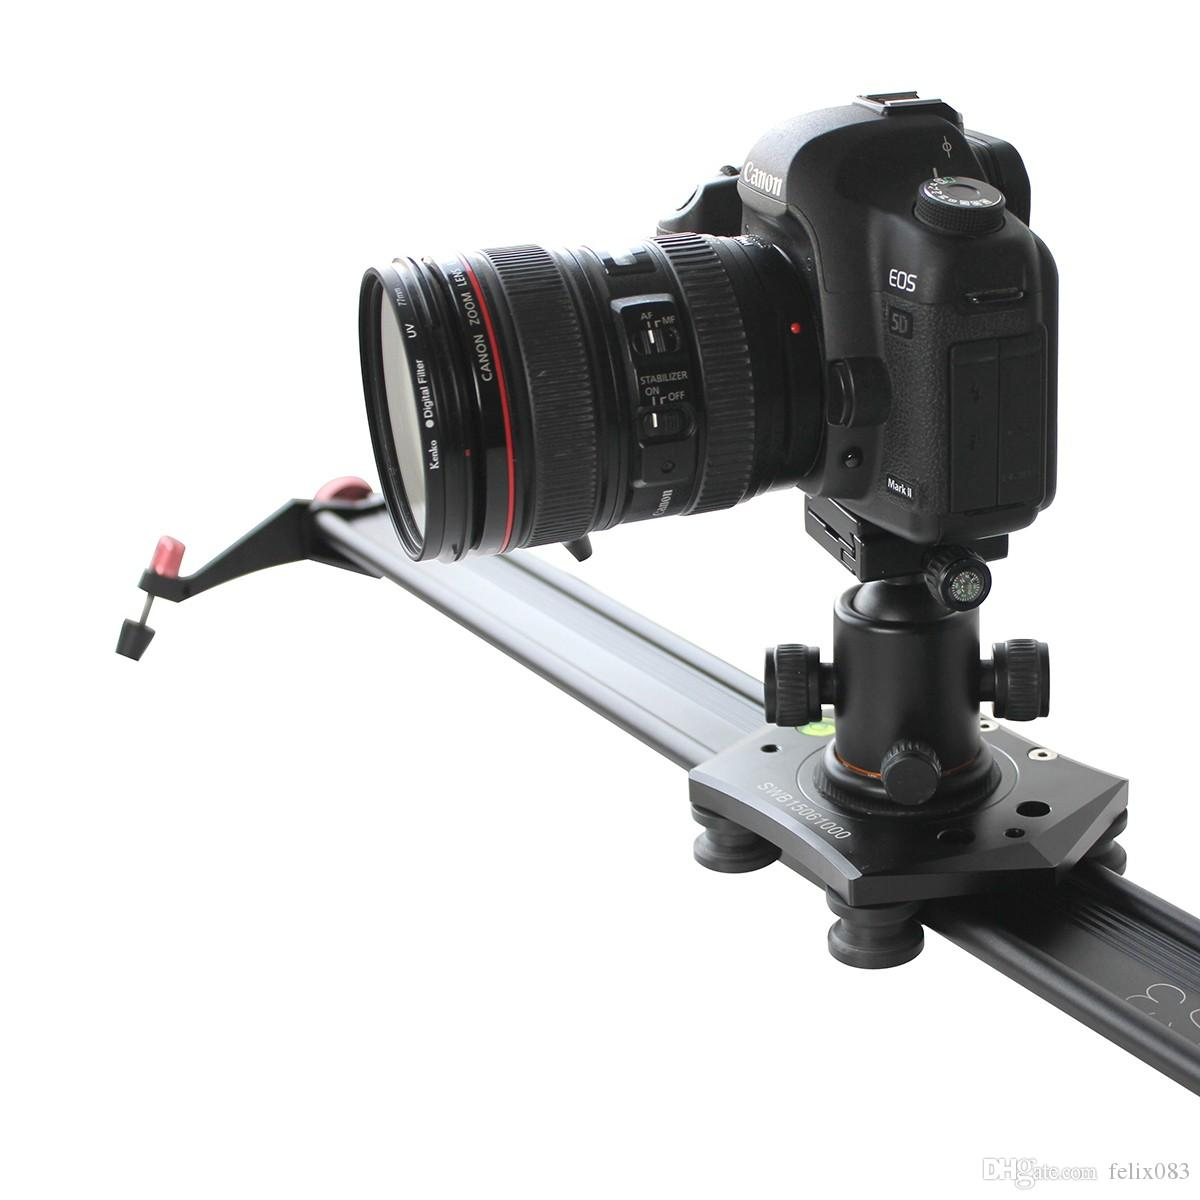 for S3 40 Inch DSLR Camera Slider Dolly Track Video Stabilizer with 22lb/10kg Load Capacity with 4 Damping Adjustable Bearings